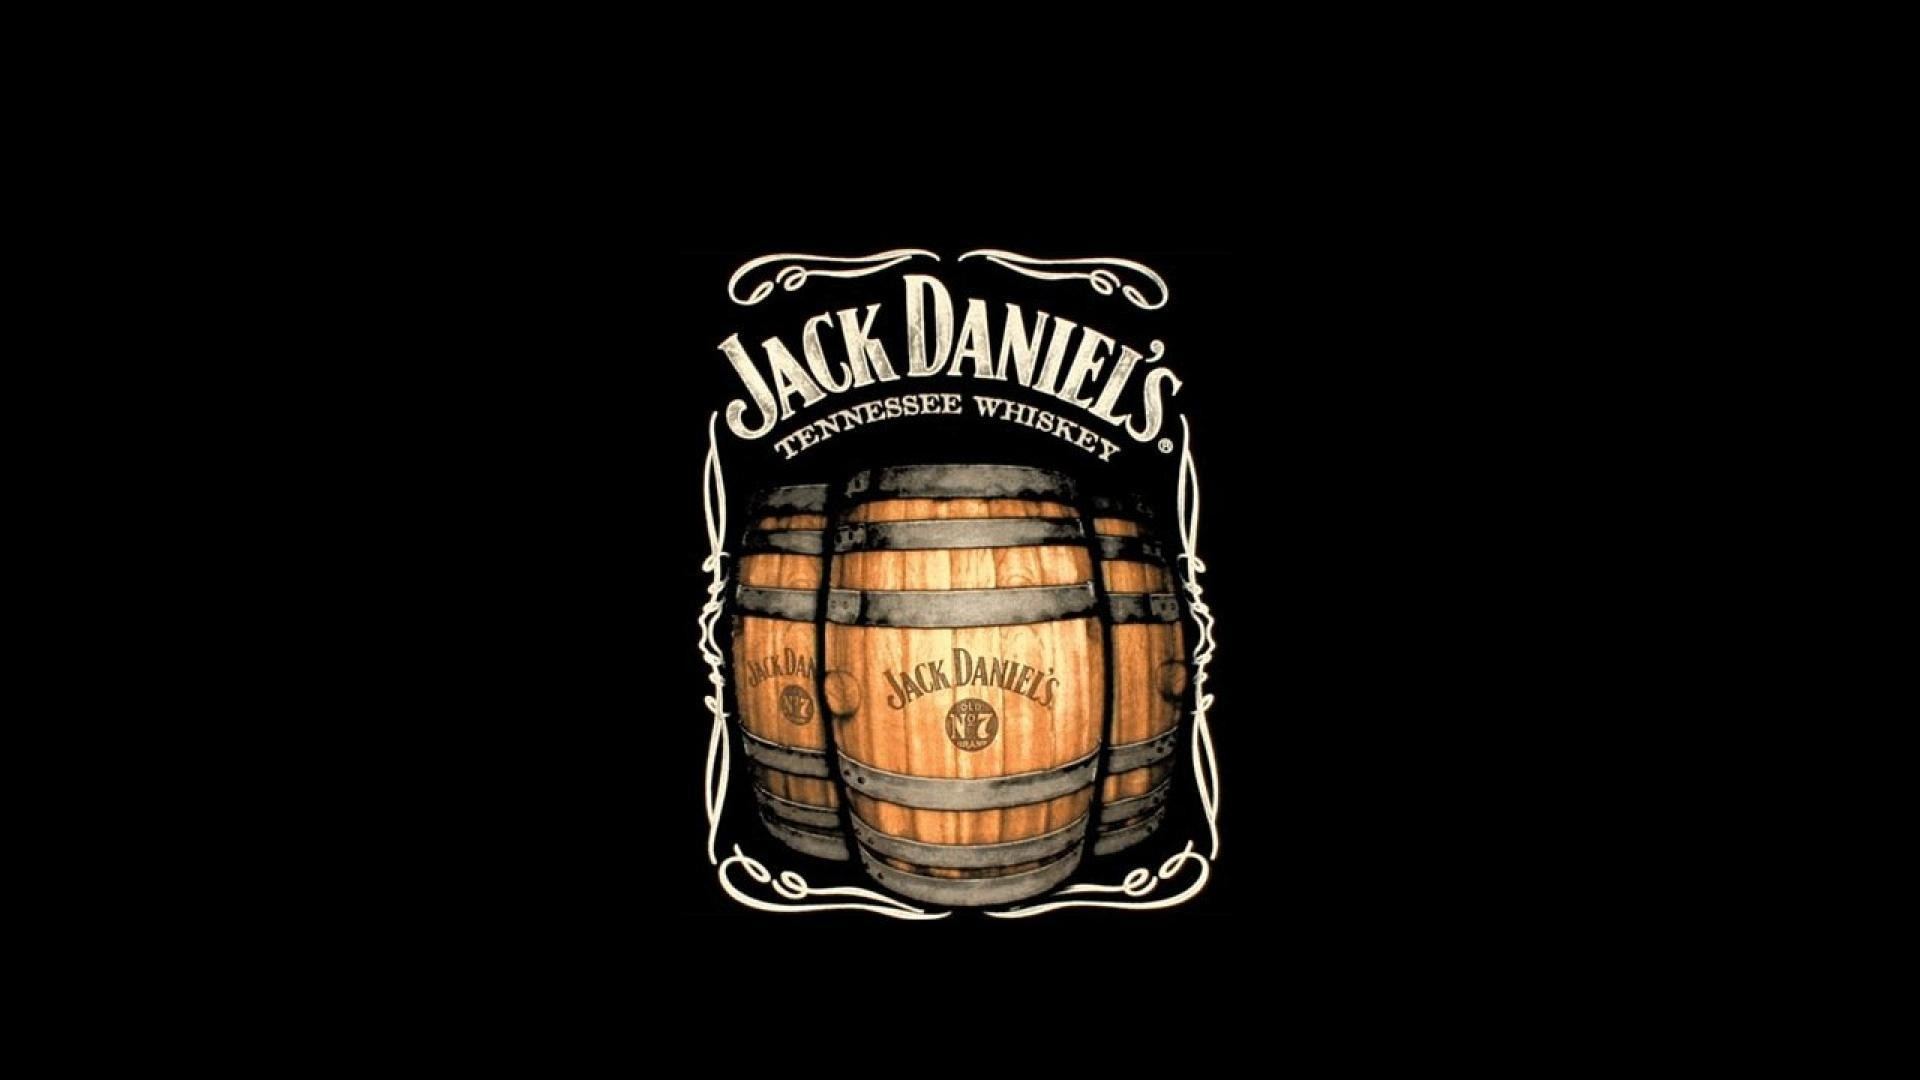 Perfect Jack Daniels Wallpaper These Are High Quality And Definition HD